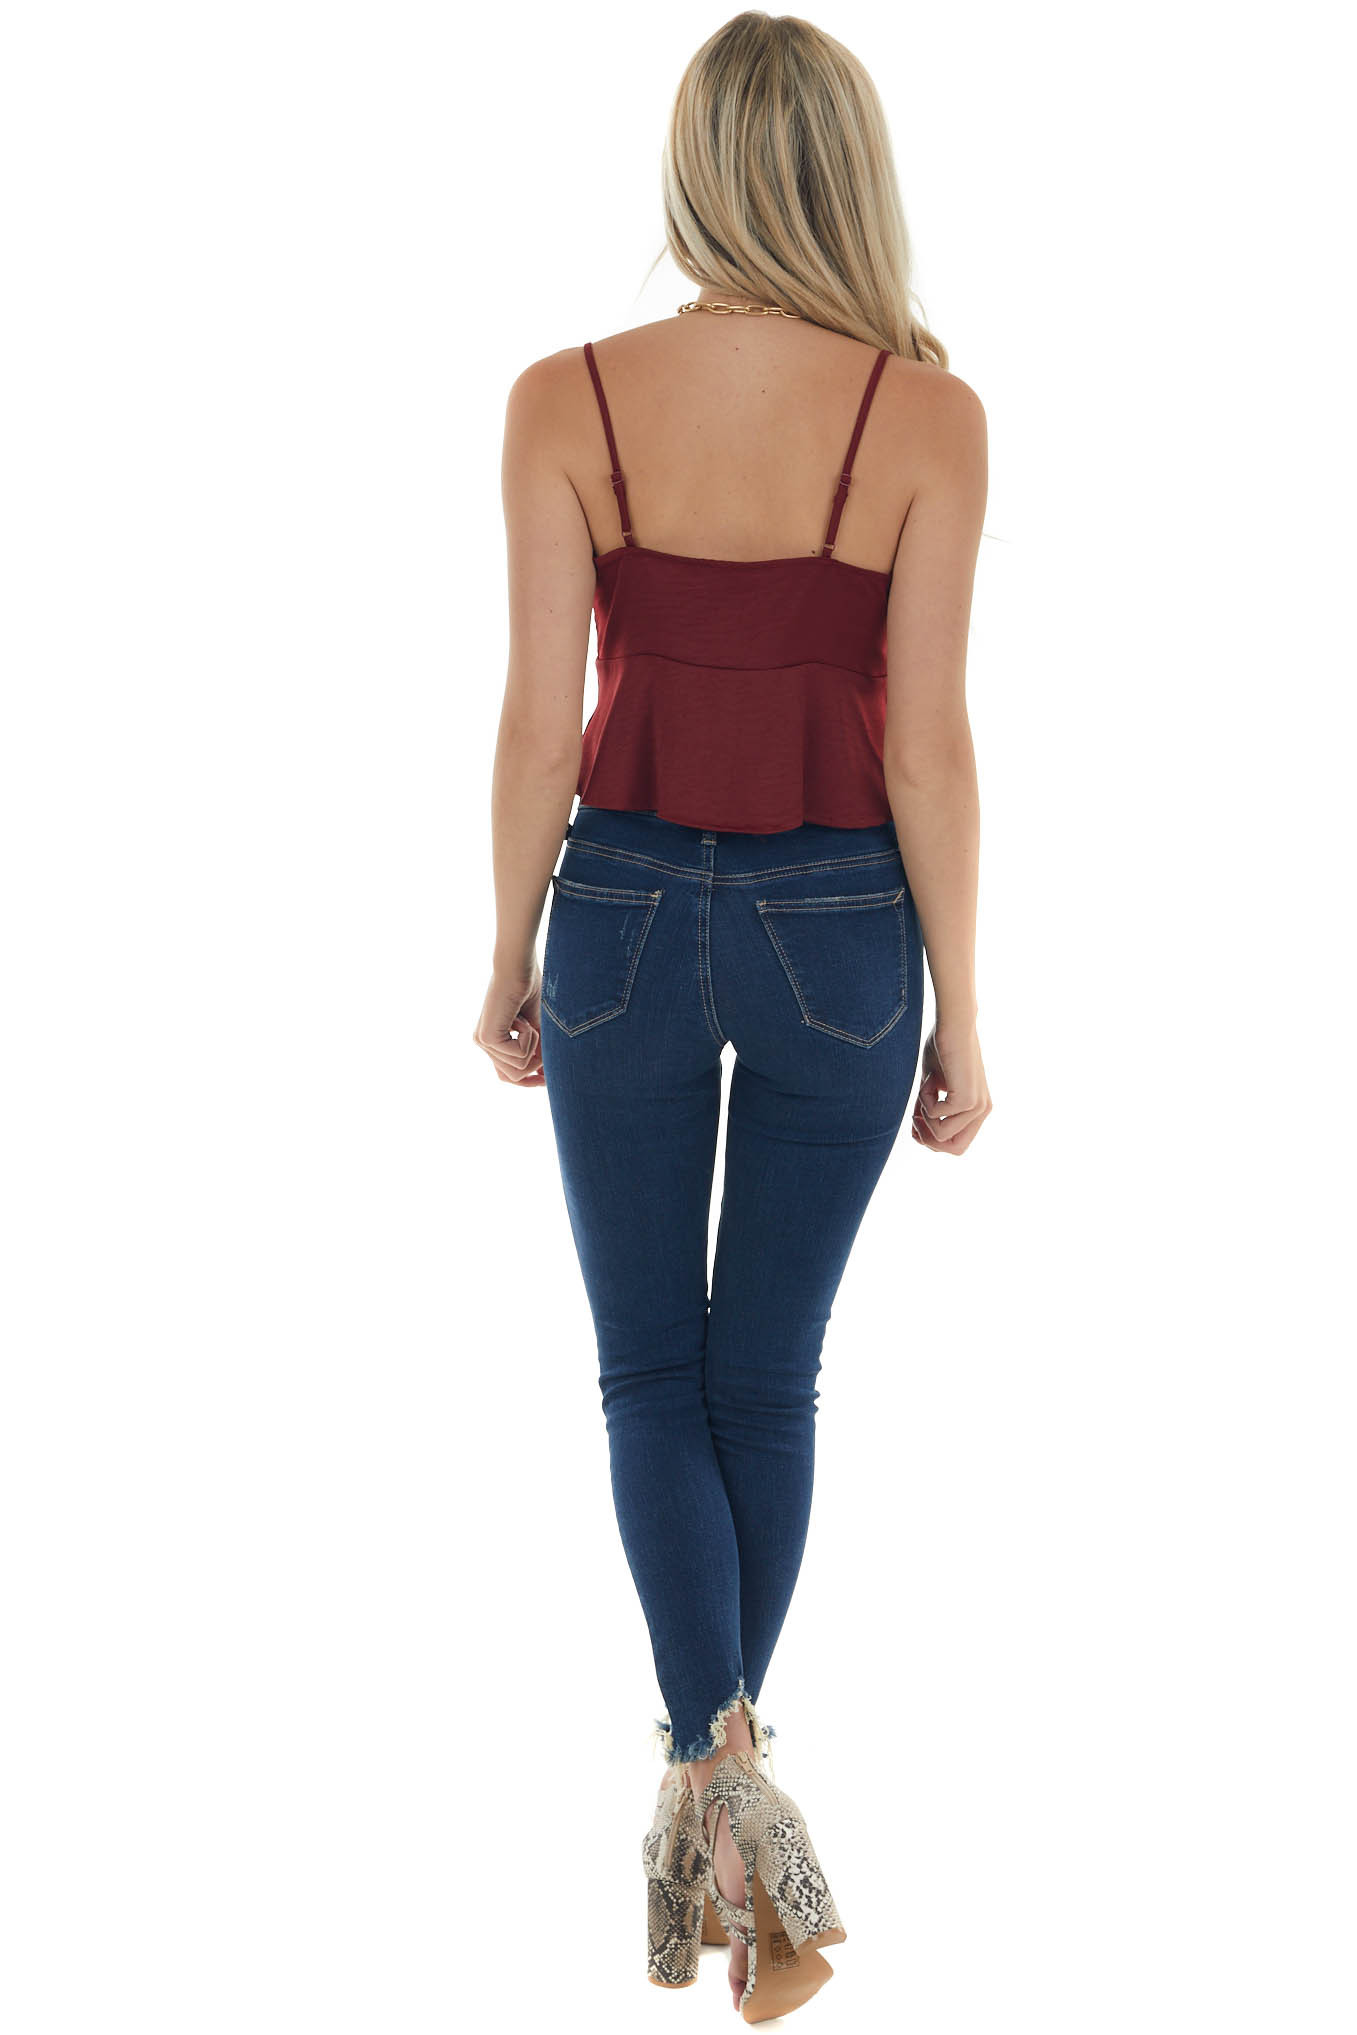 Maroon Sleeveless Front Tie Cropped Camisole